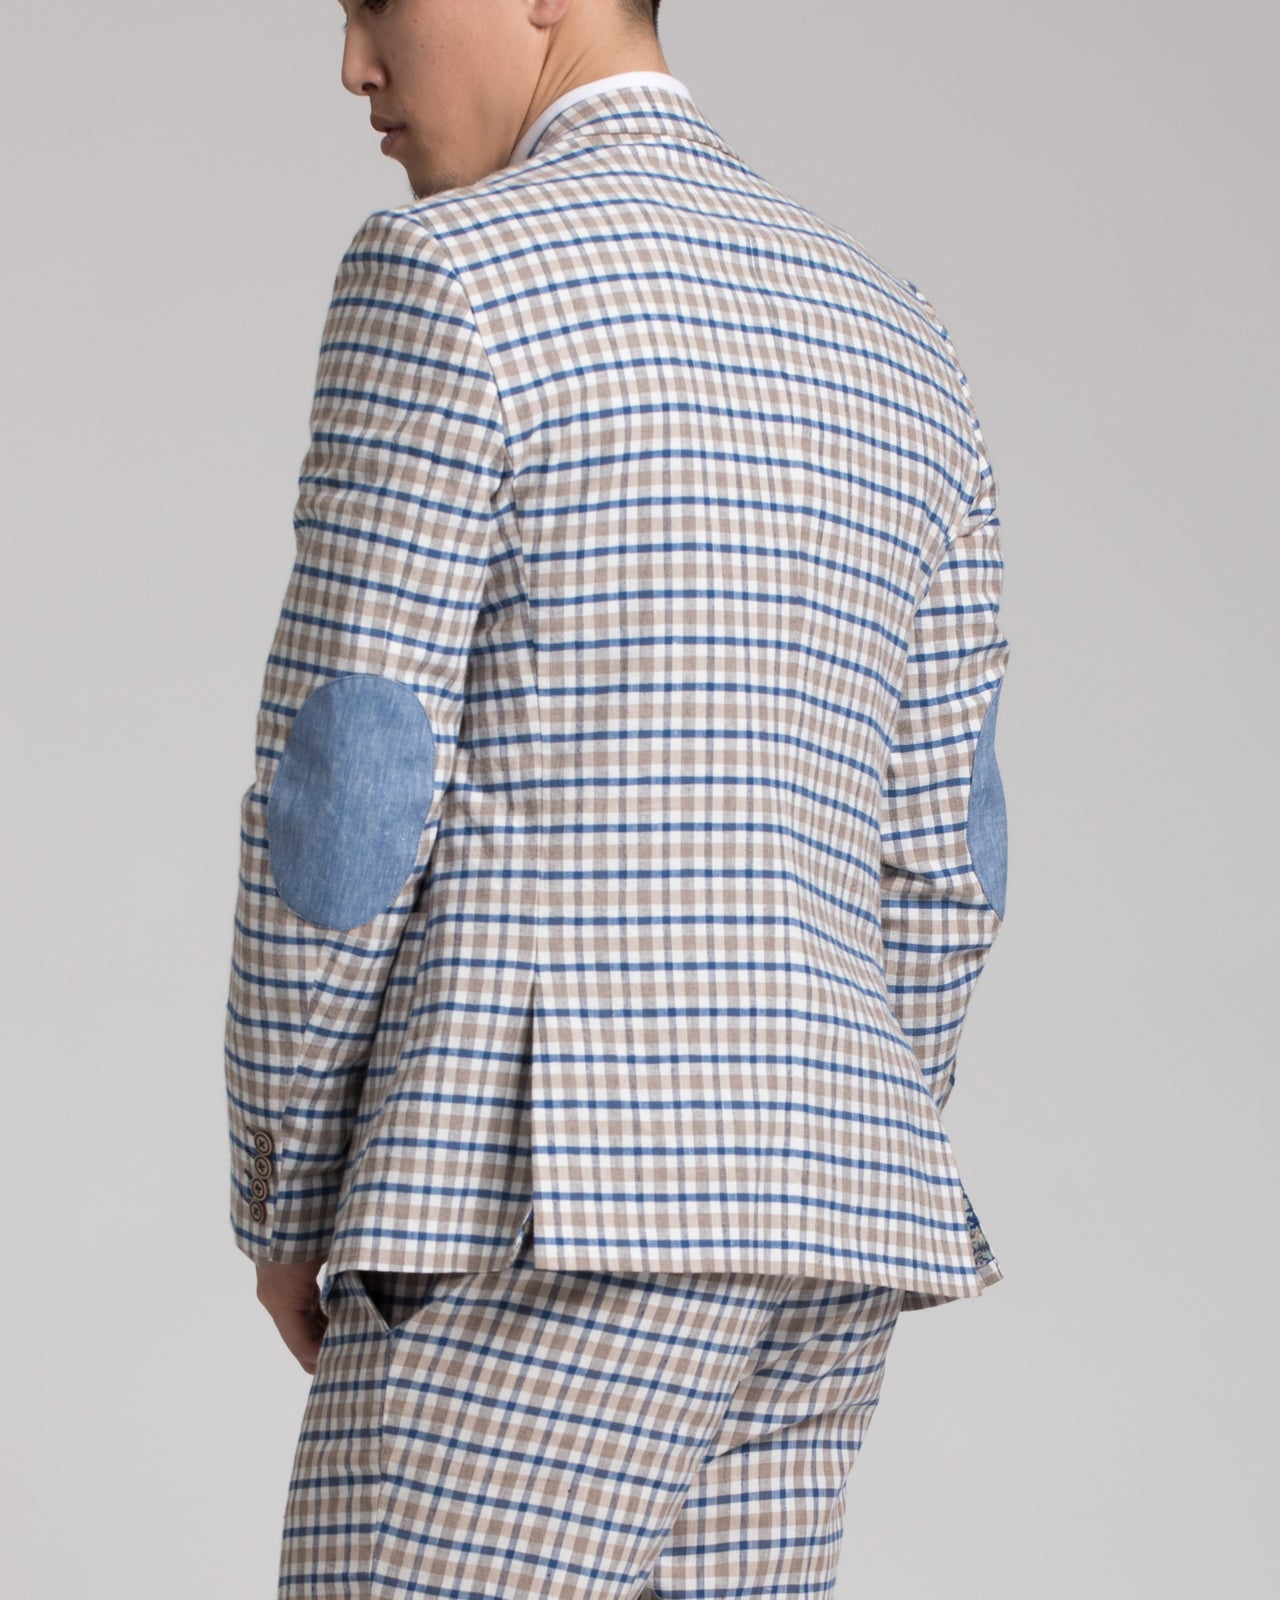 Ashton Peak Jacket - Color: Tan & Blue Plaid | Beige